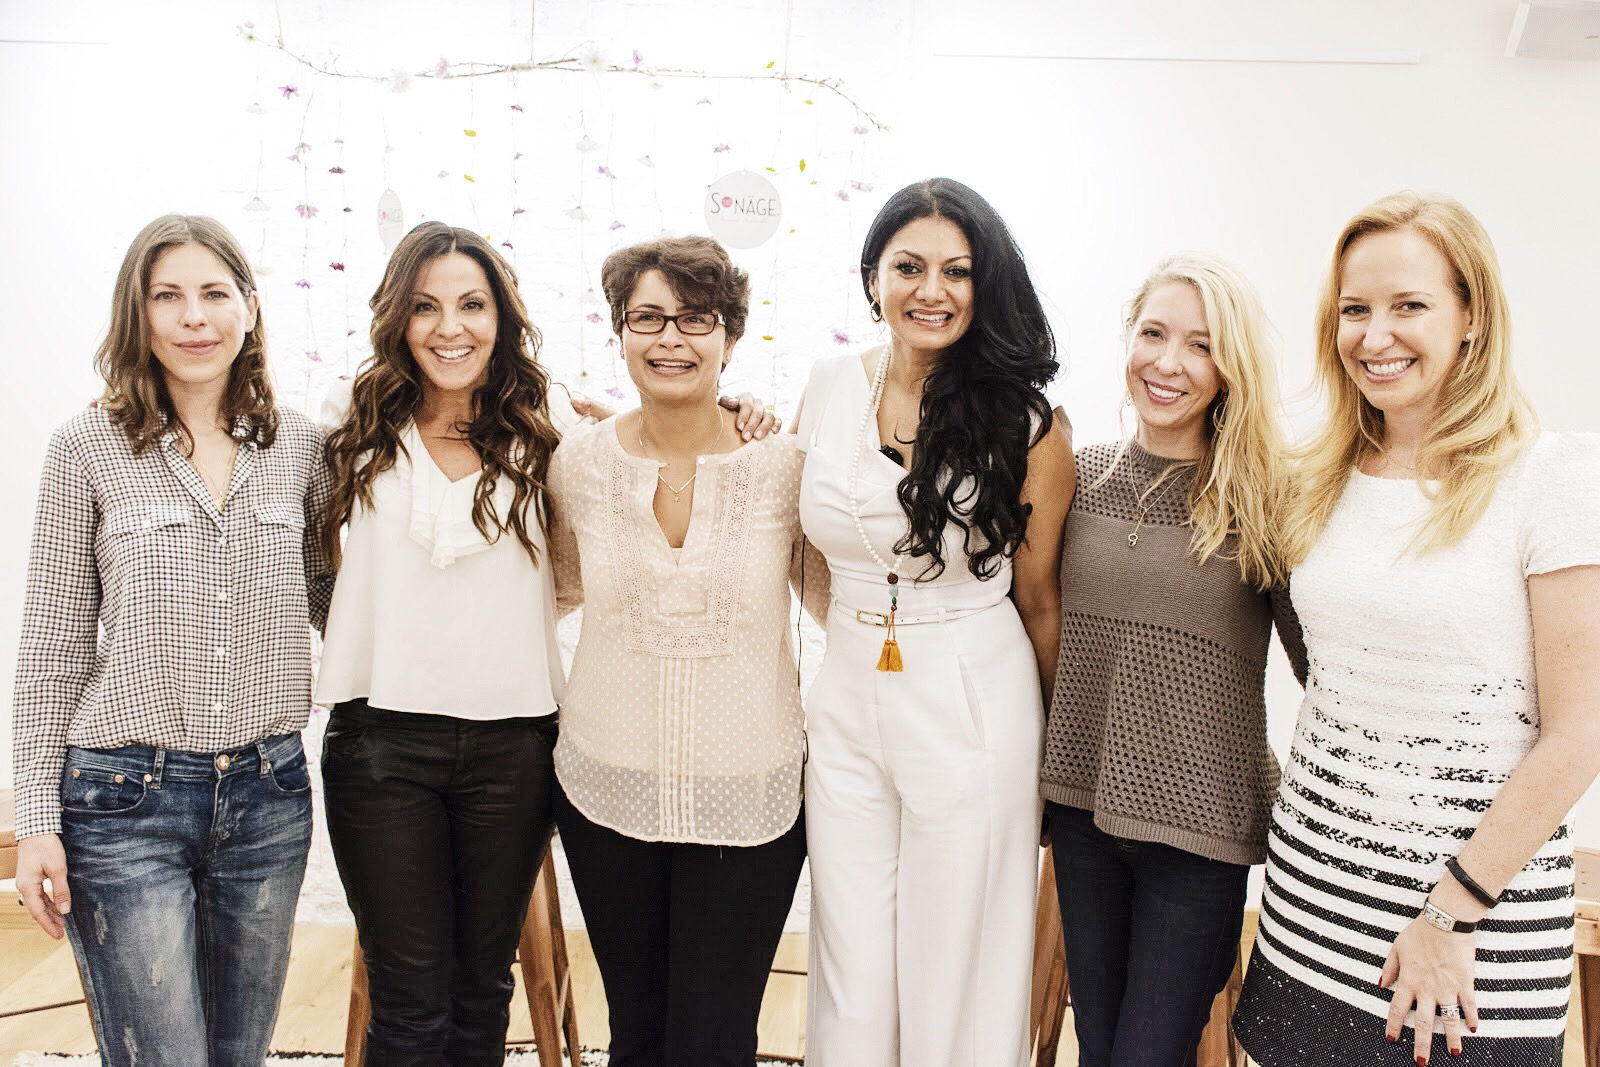 The-Beauty-of-Balance-with-Sonage-panelists-Robin-Berzin-Lavinia-Errico-Anisha-Khanna-Donna-D'Cruz-Sara-ReistadLong-Alexandra-WilkisWilson